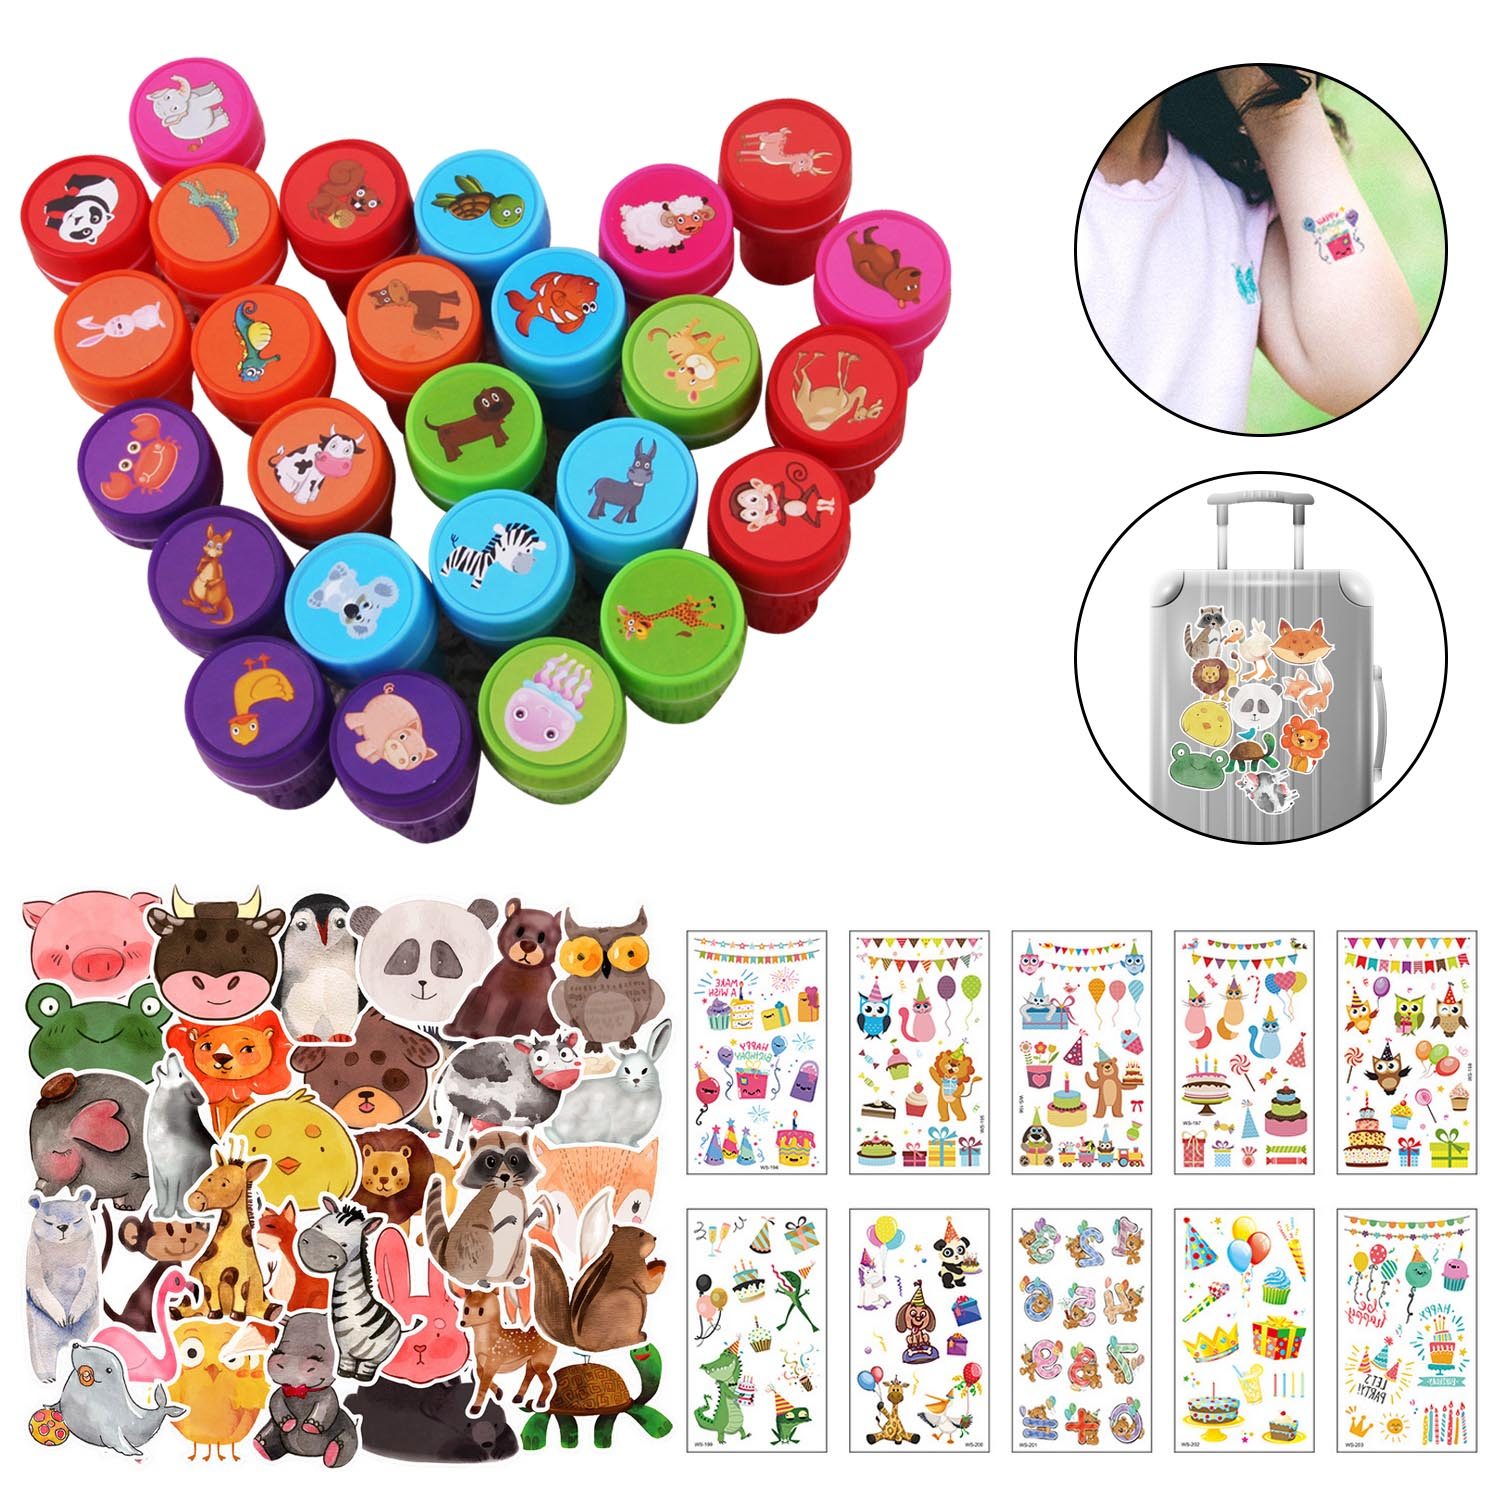 10 Sheet Tattoo Stickers + 50 Sheet PVC Stickers + 26PCS Stamps For Birthday Festival Animal Theme Party Favors Supplies